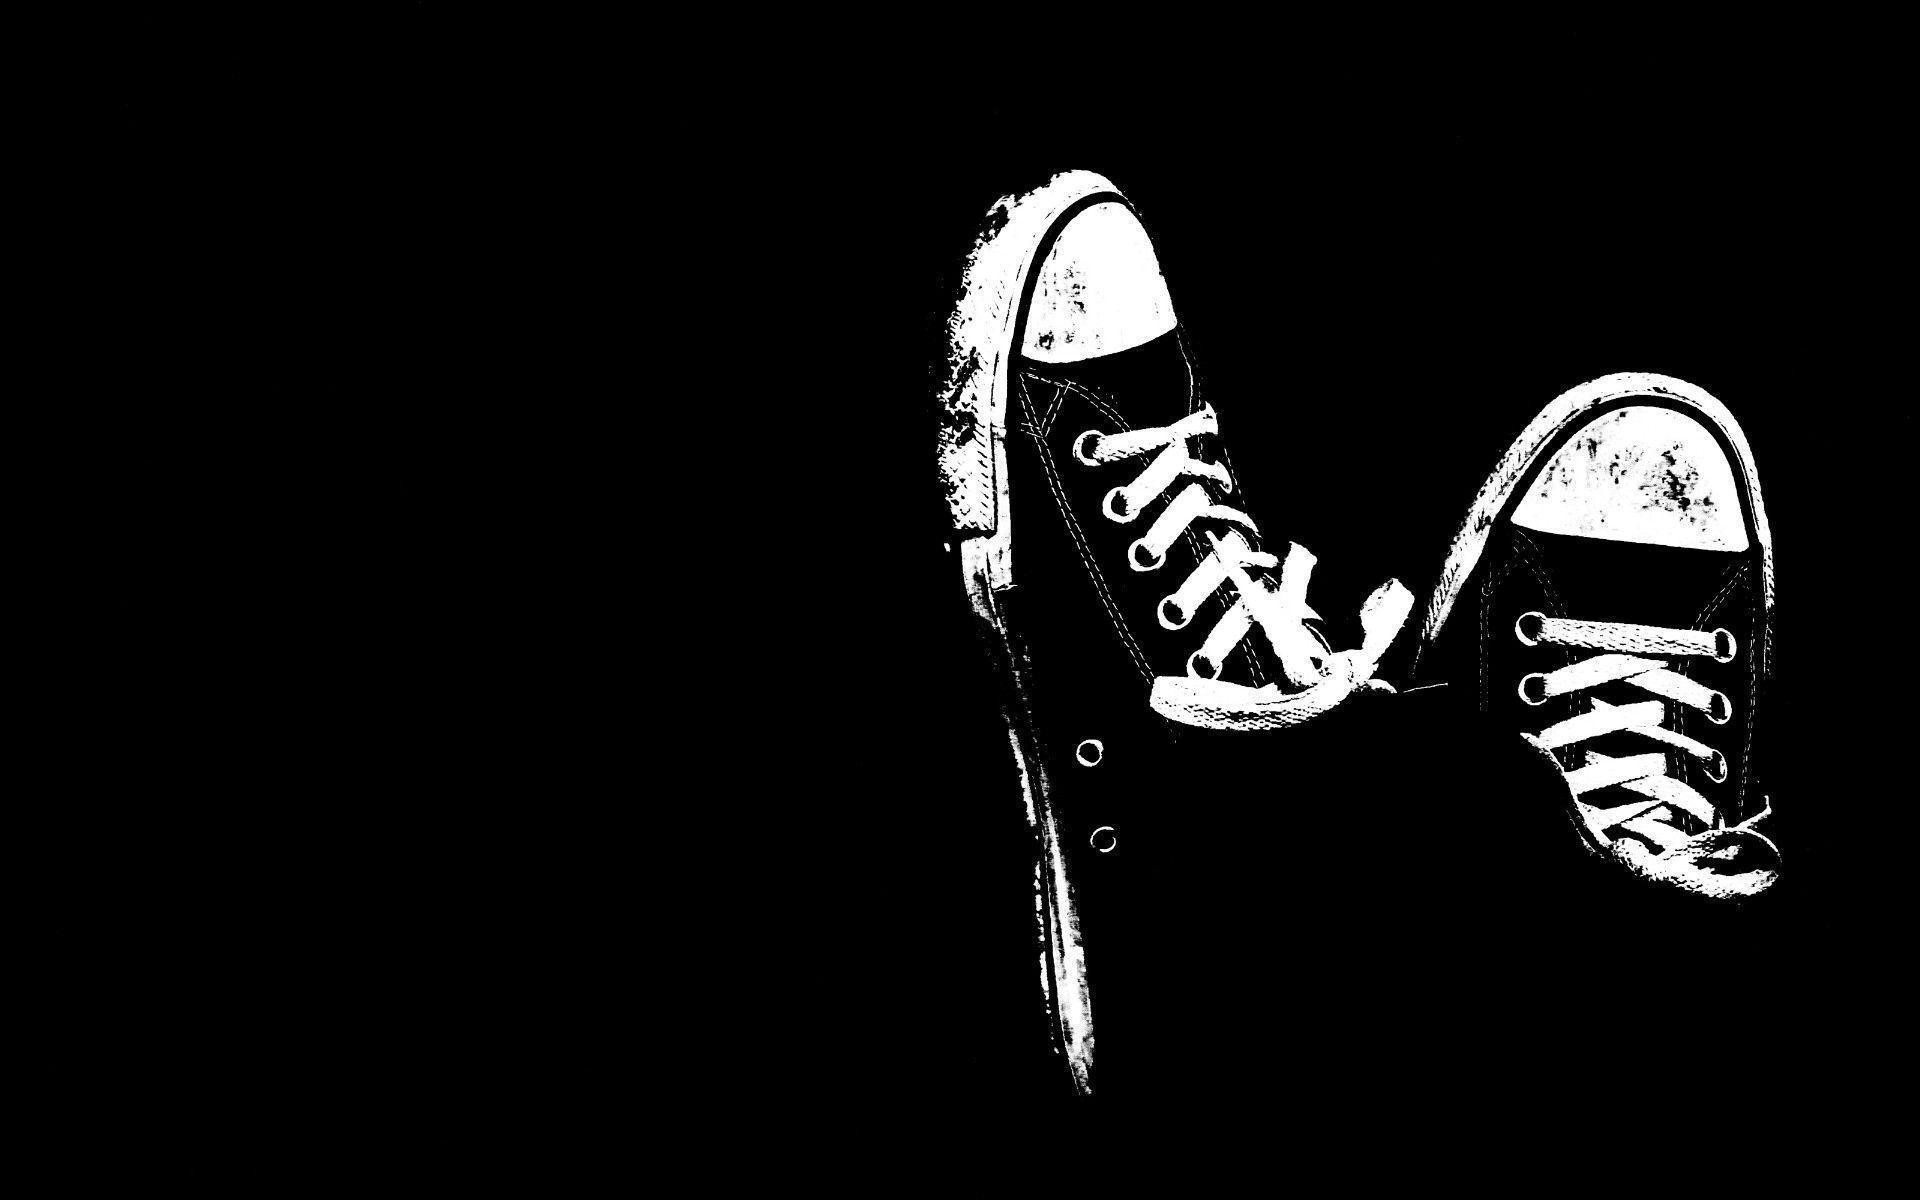 1920x1200 Art: Cool Converse Black White Black Backgrounds Wallpapers .